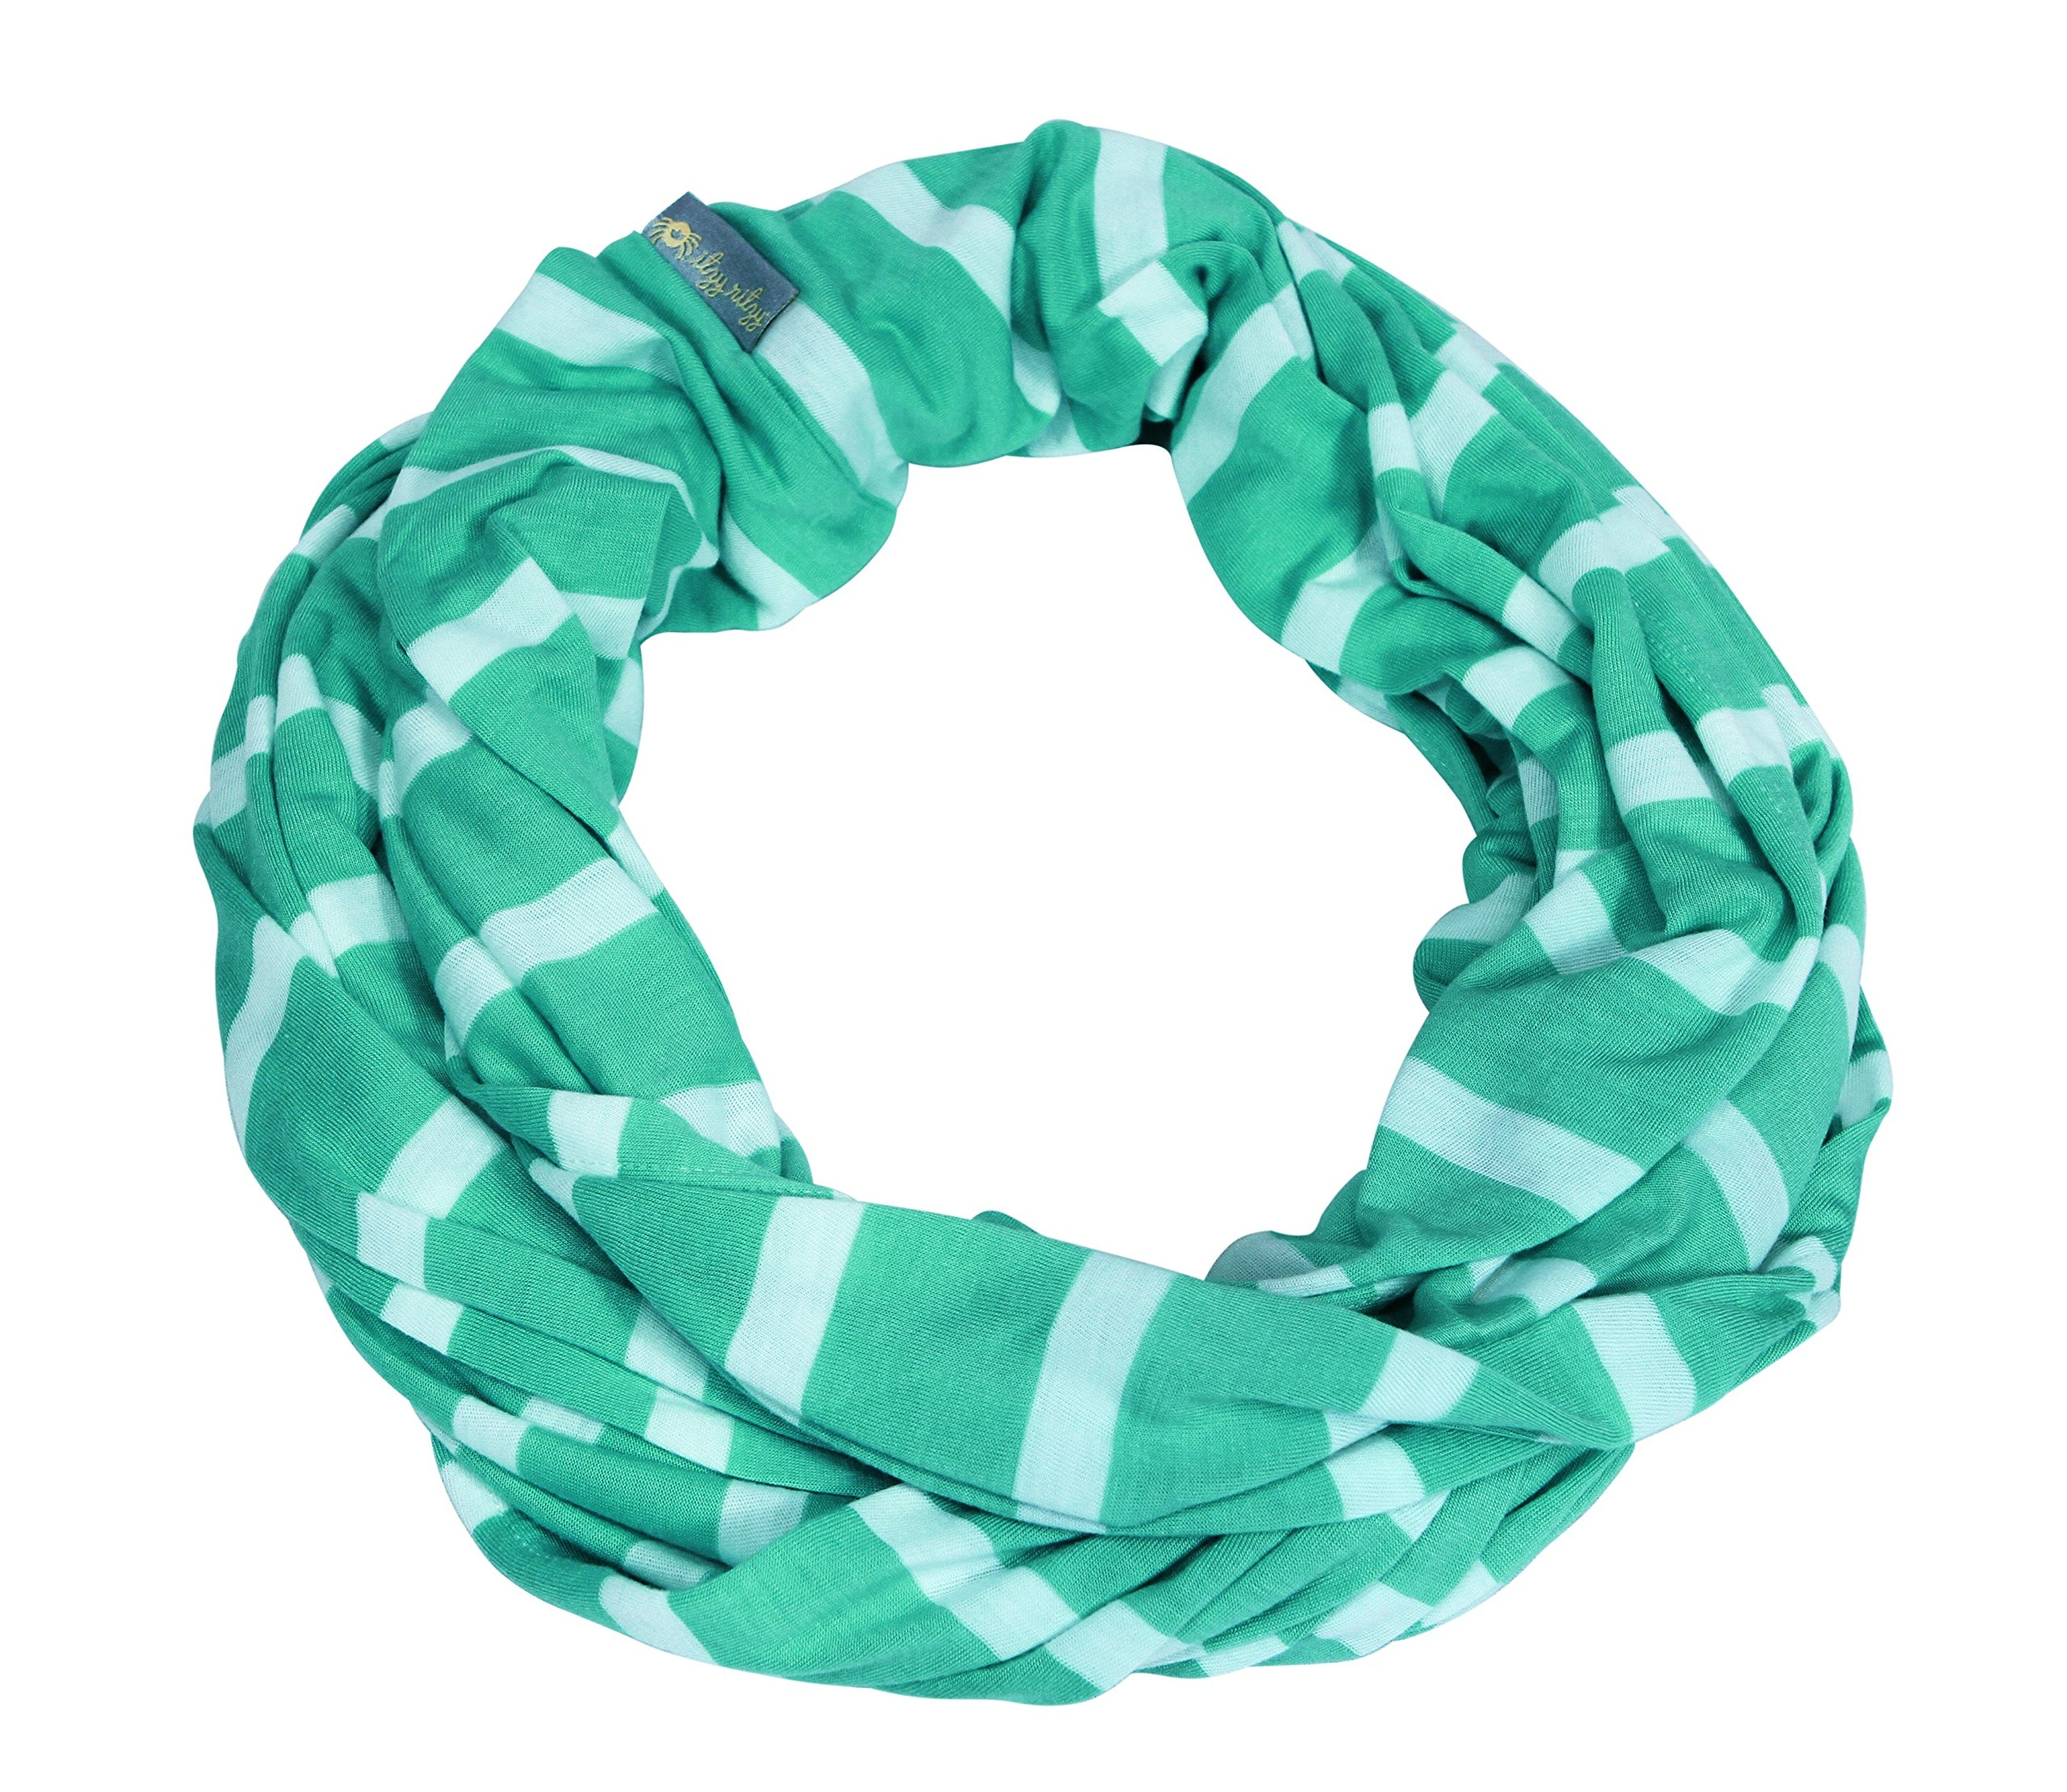 Itzy Ritzy Breastfeeding Cover and Infinity Nursing Scarf - Nursing Cover Can Be Worn as a Scarf and Provides Full Coverage While Nursing Baby, Seaside Stripe